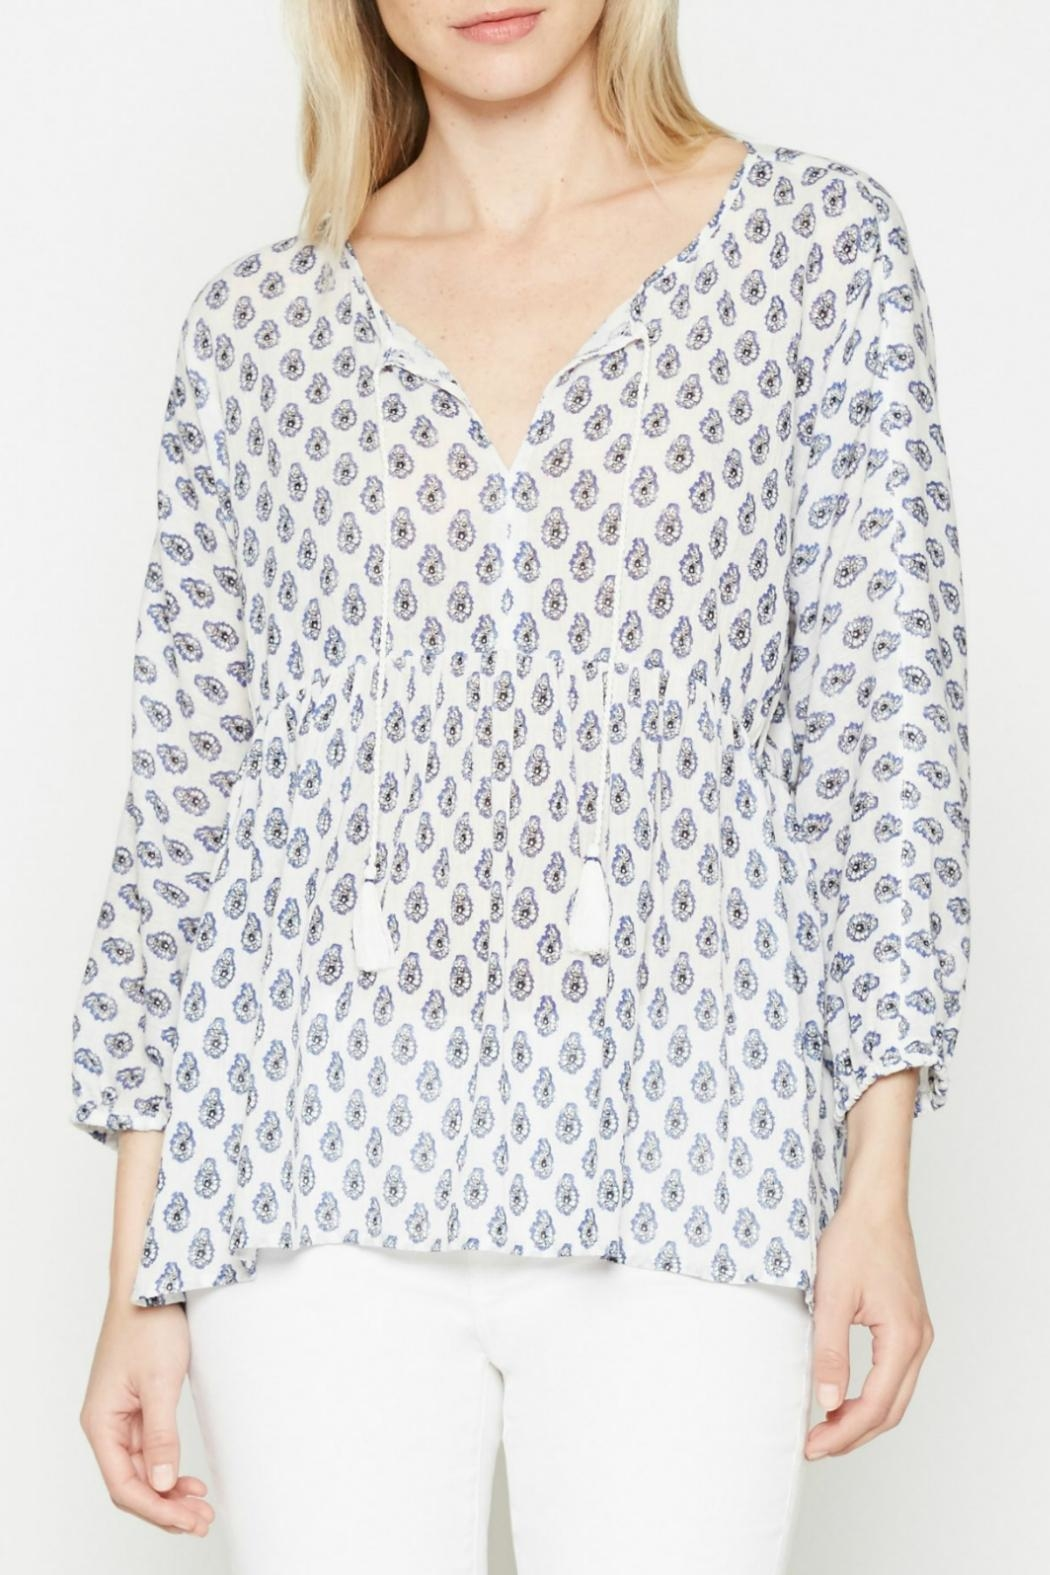 Soft Joie White Patterned Tassle Top - Main Image